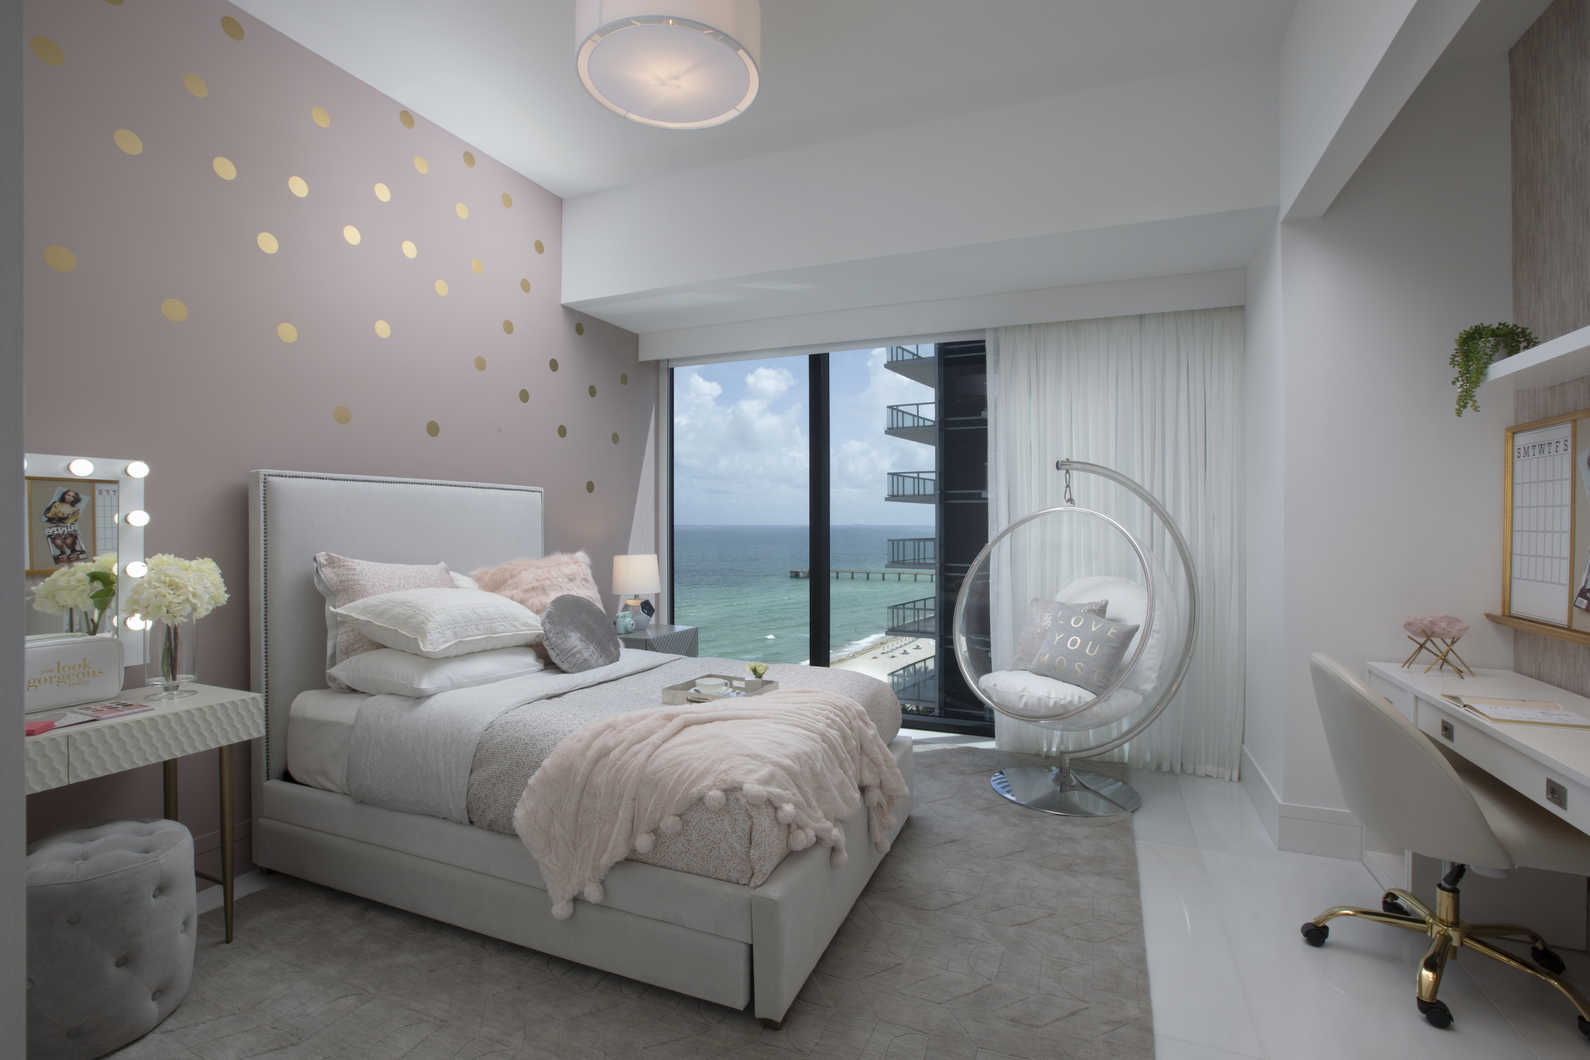 Luxe Waterfront Condo - Residential Interior Design From ... on Small Bedroom Ideas For Women  id=81715